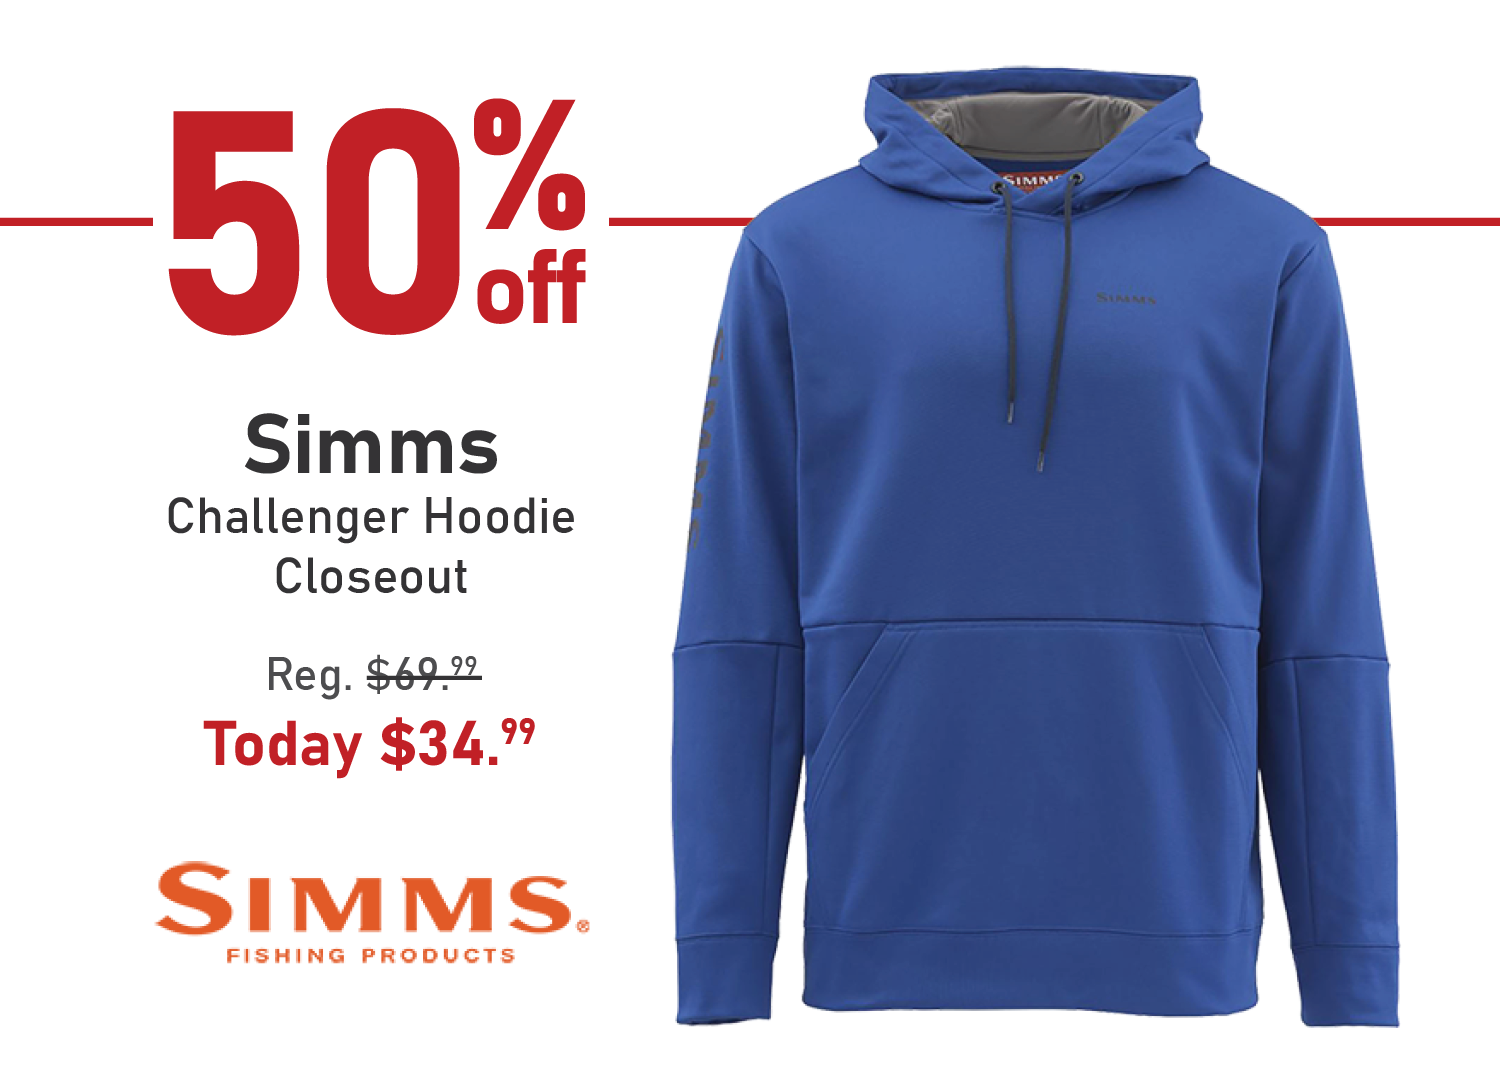 Simms Challenger Hoodie - Closeout